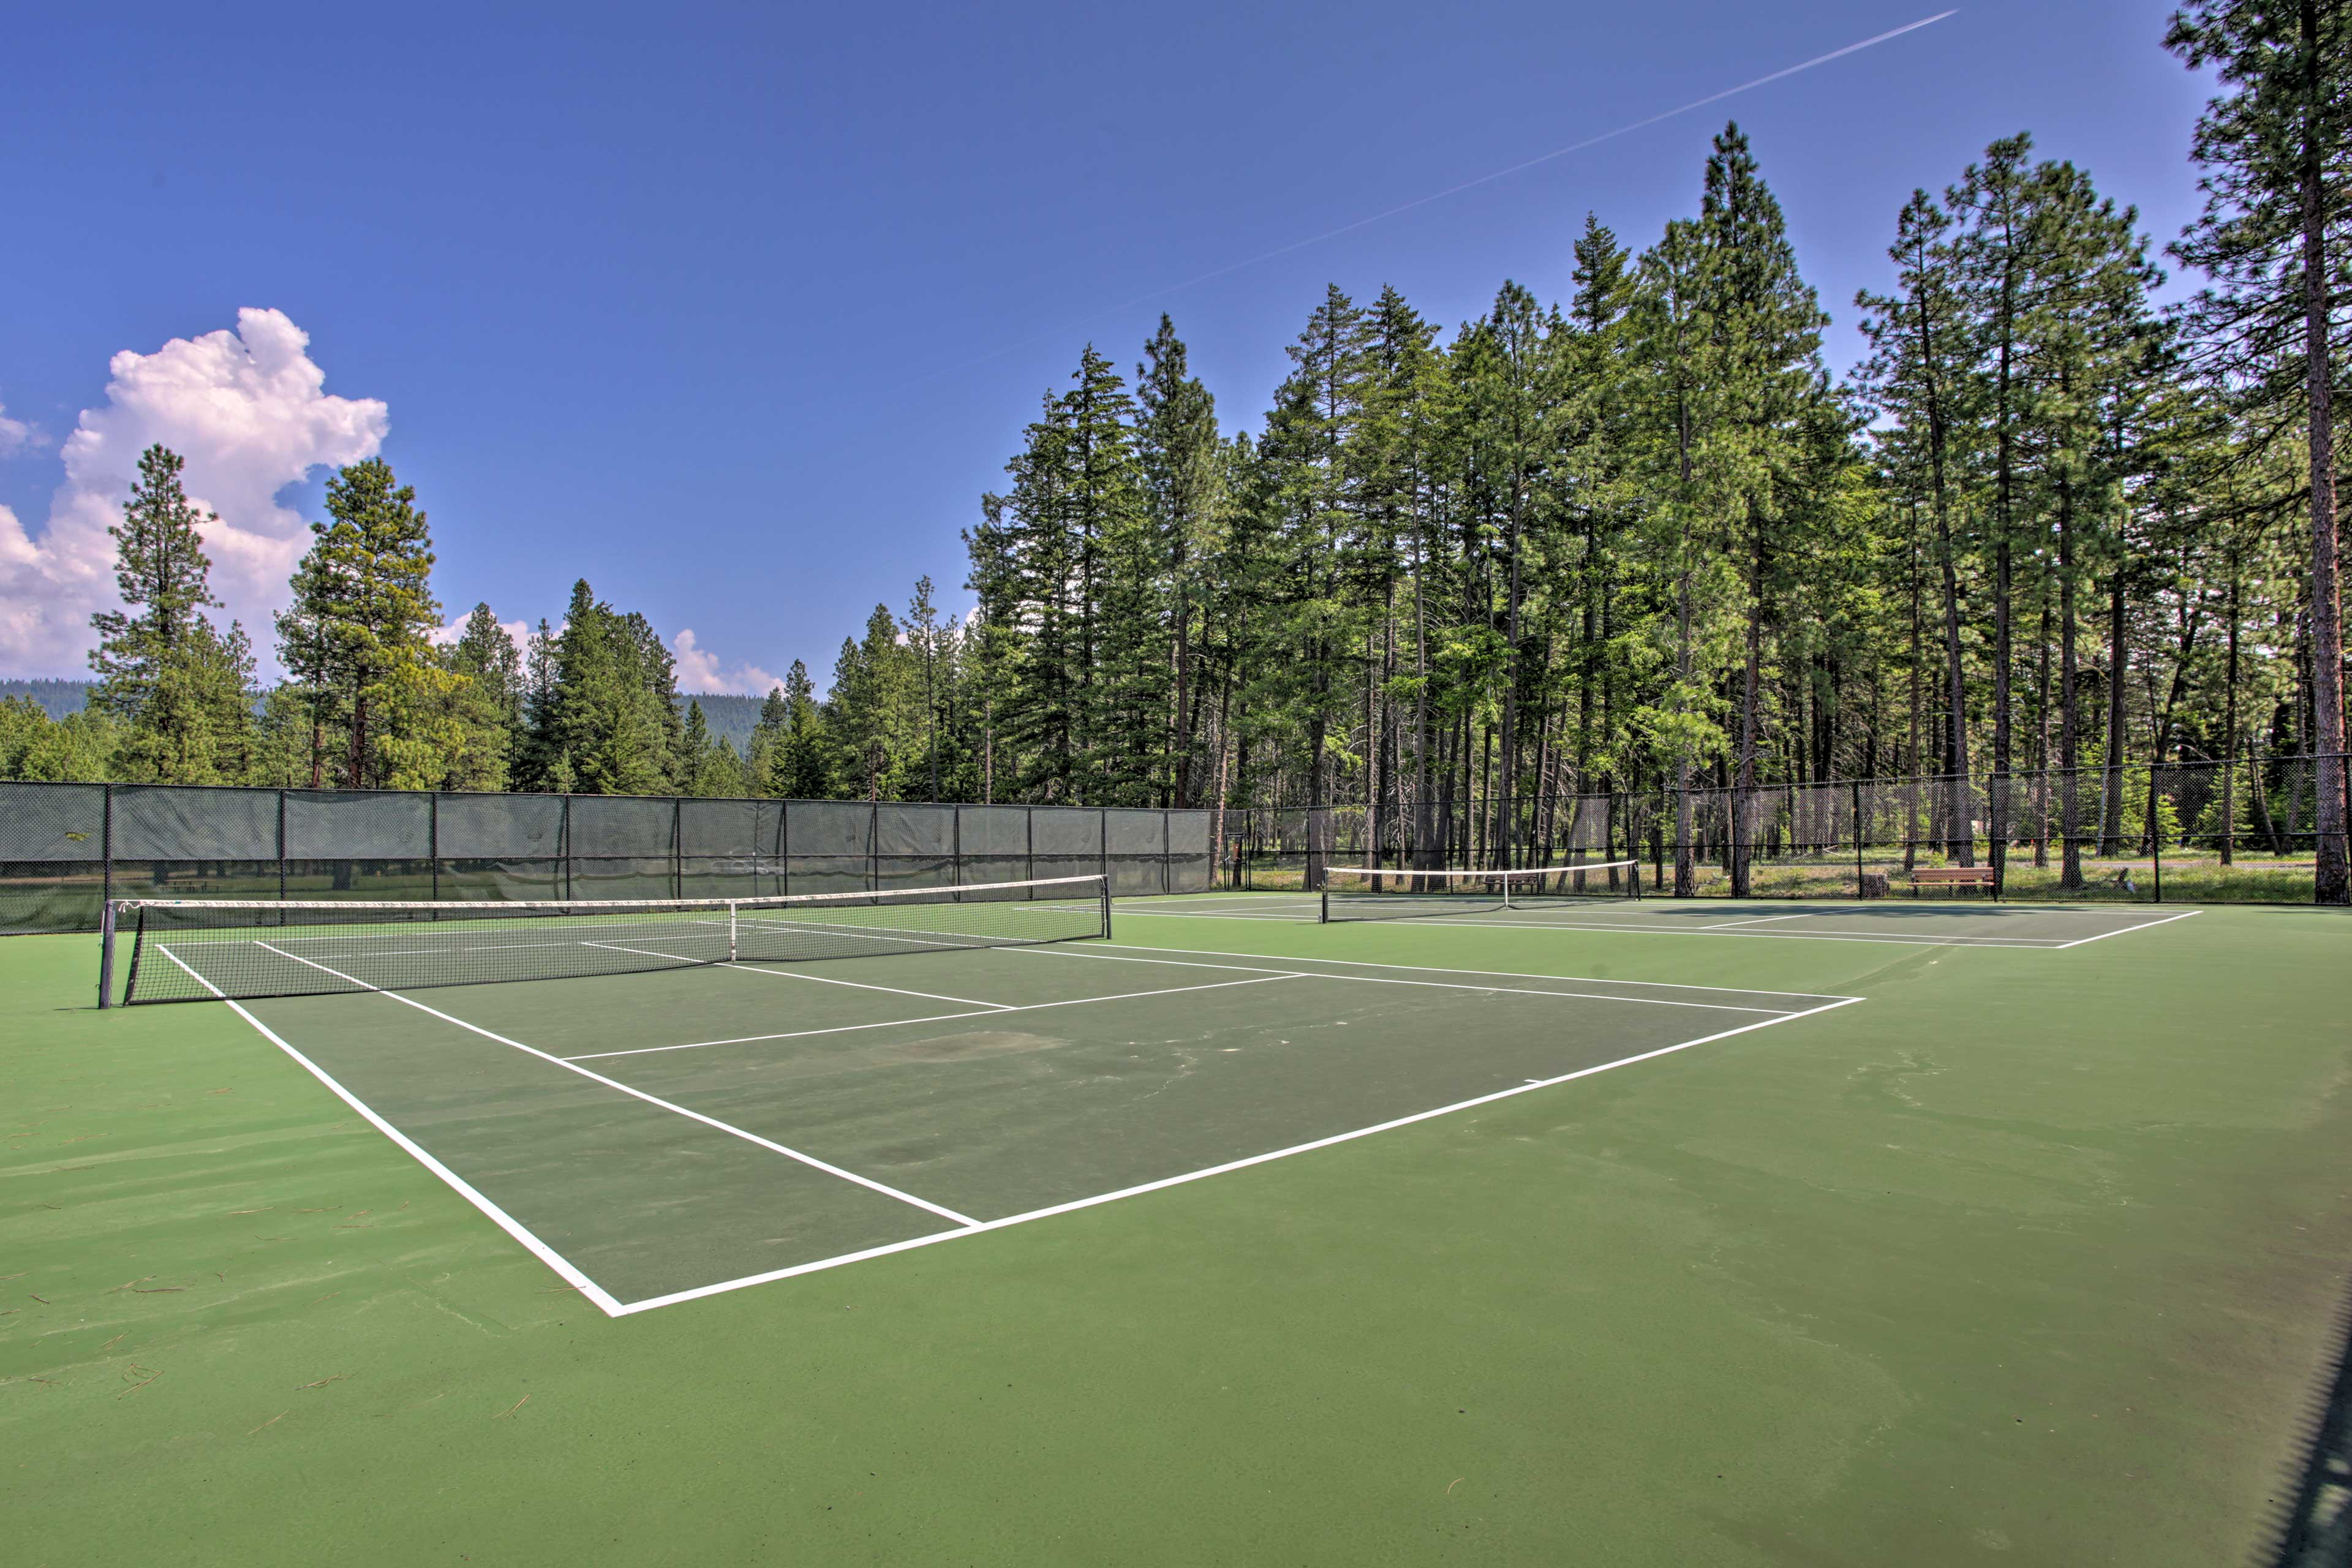 Challenge friends to a match of tennis.